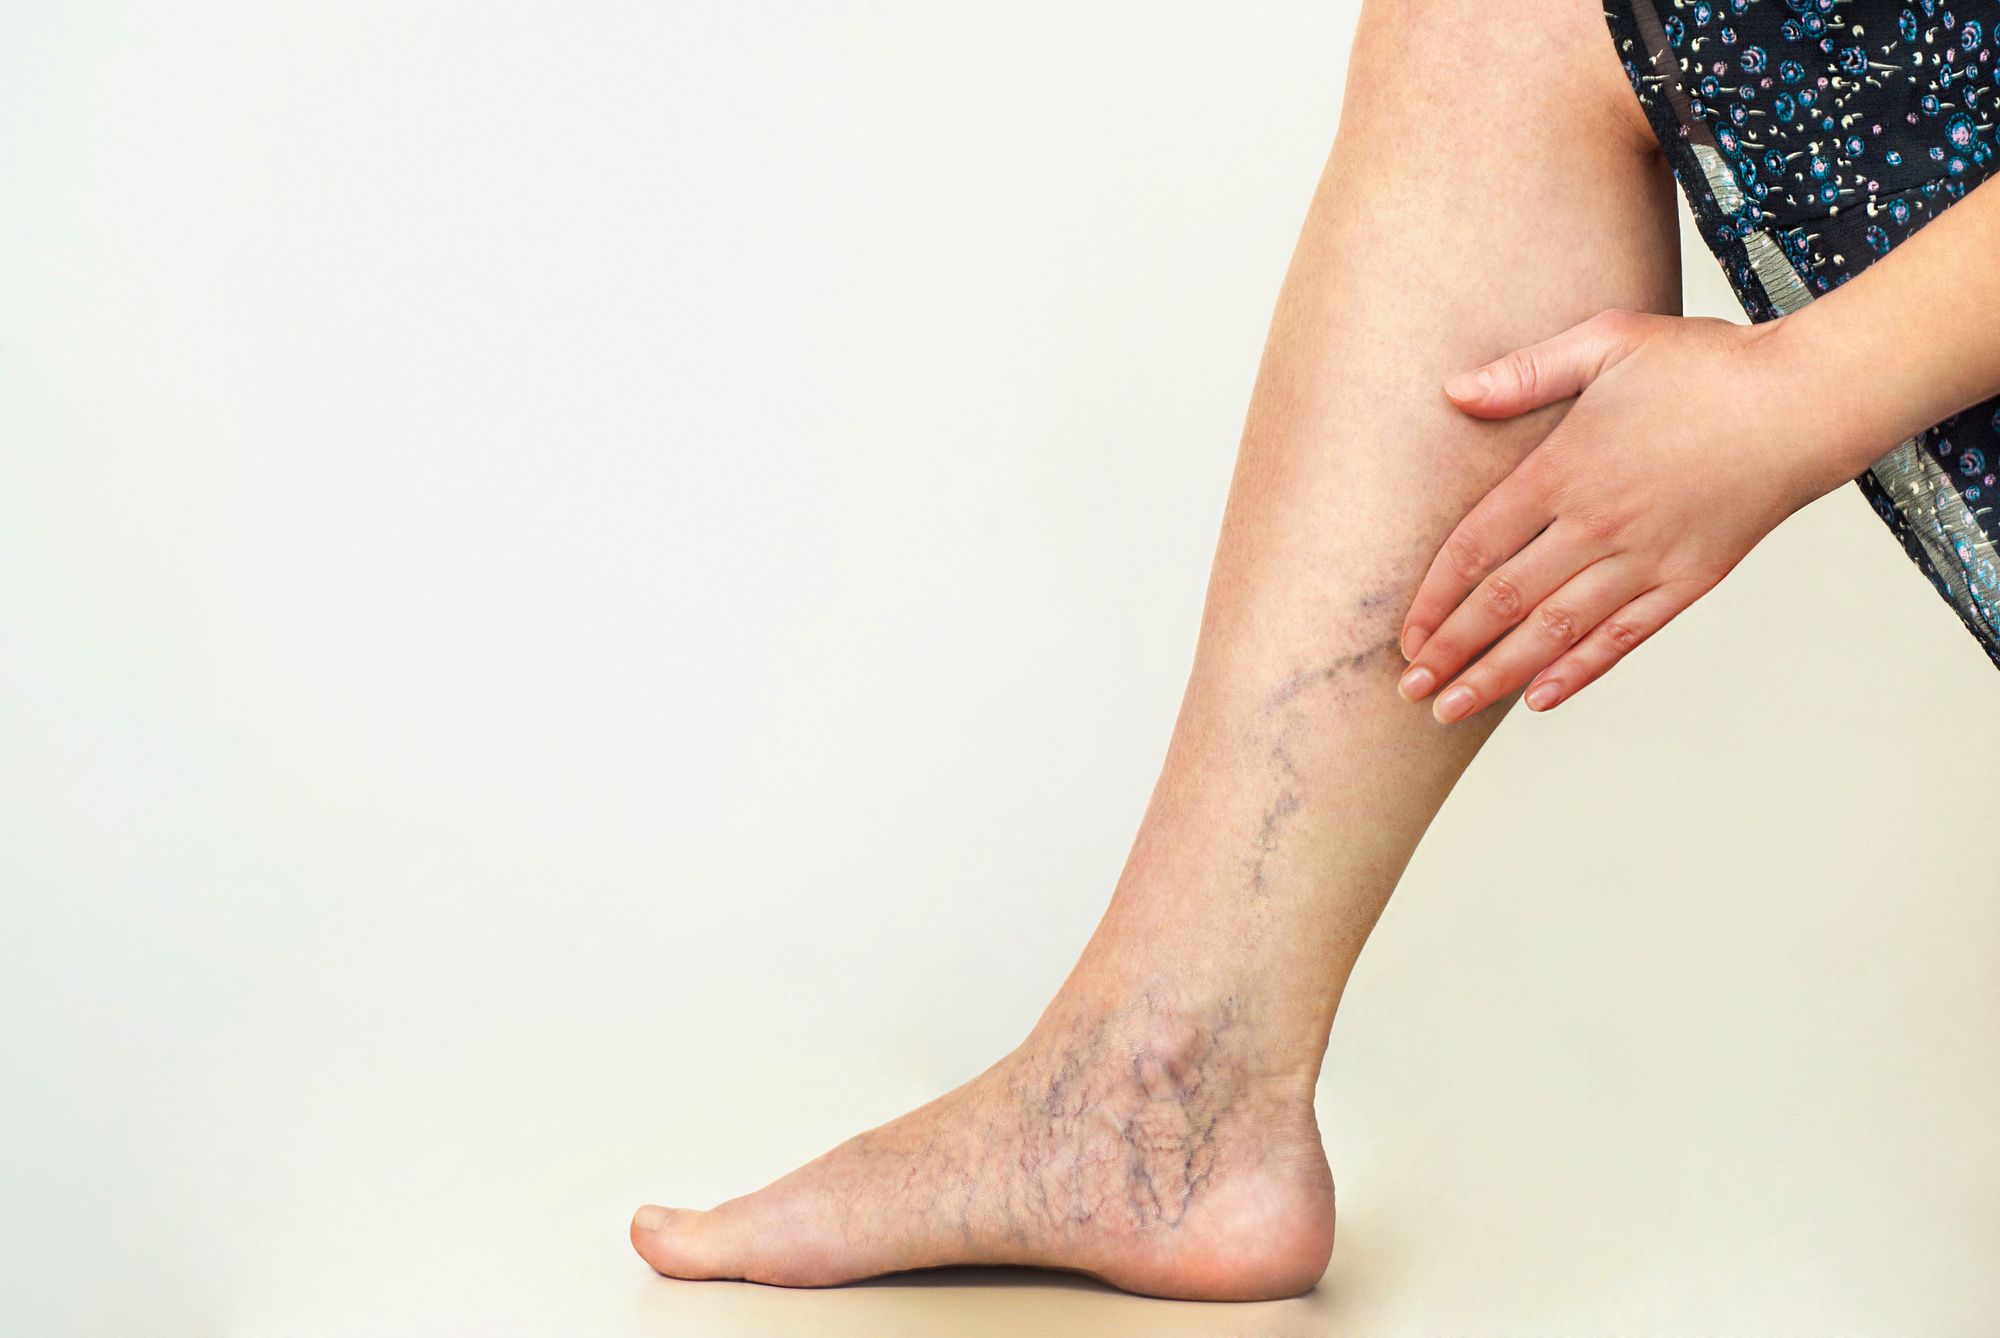 If you're trying to figure out how to get rid of varicose veins, you're in luck! Our guide here explains the different things you can do.